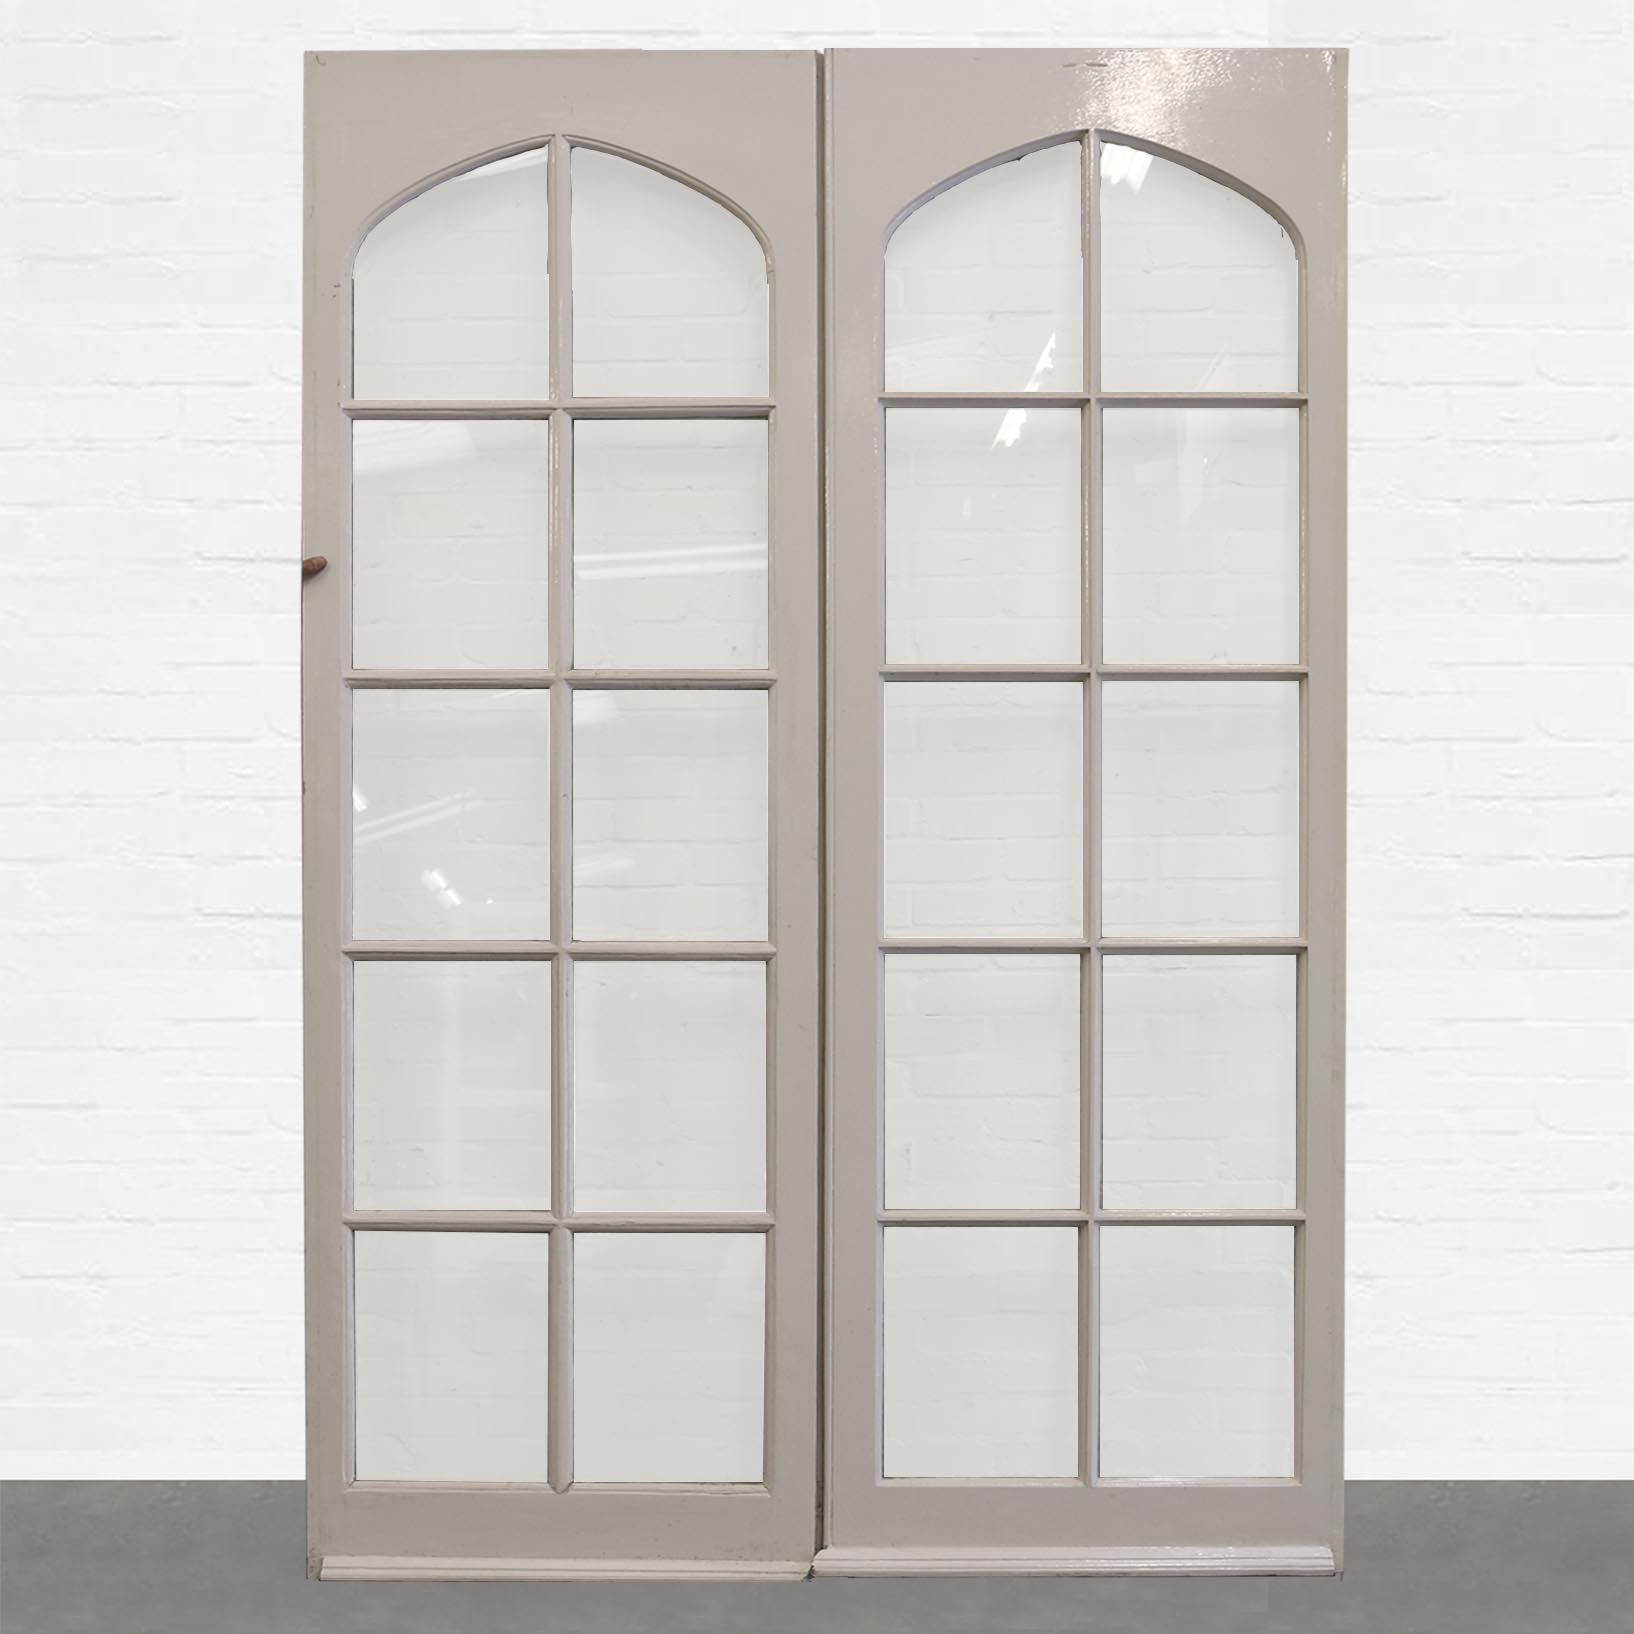 Antique Pine Glazed Double Doors - The Architectural Forum